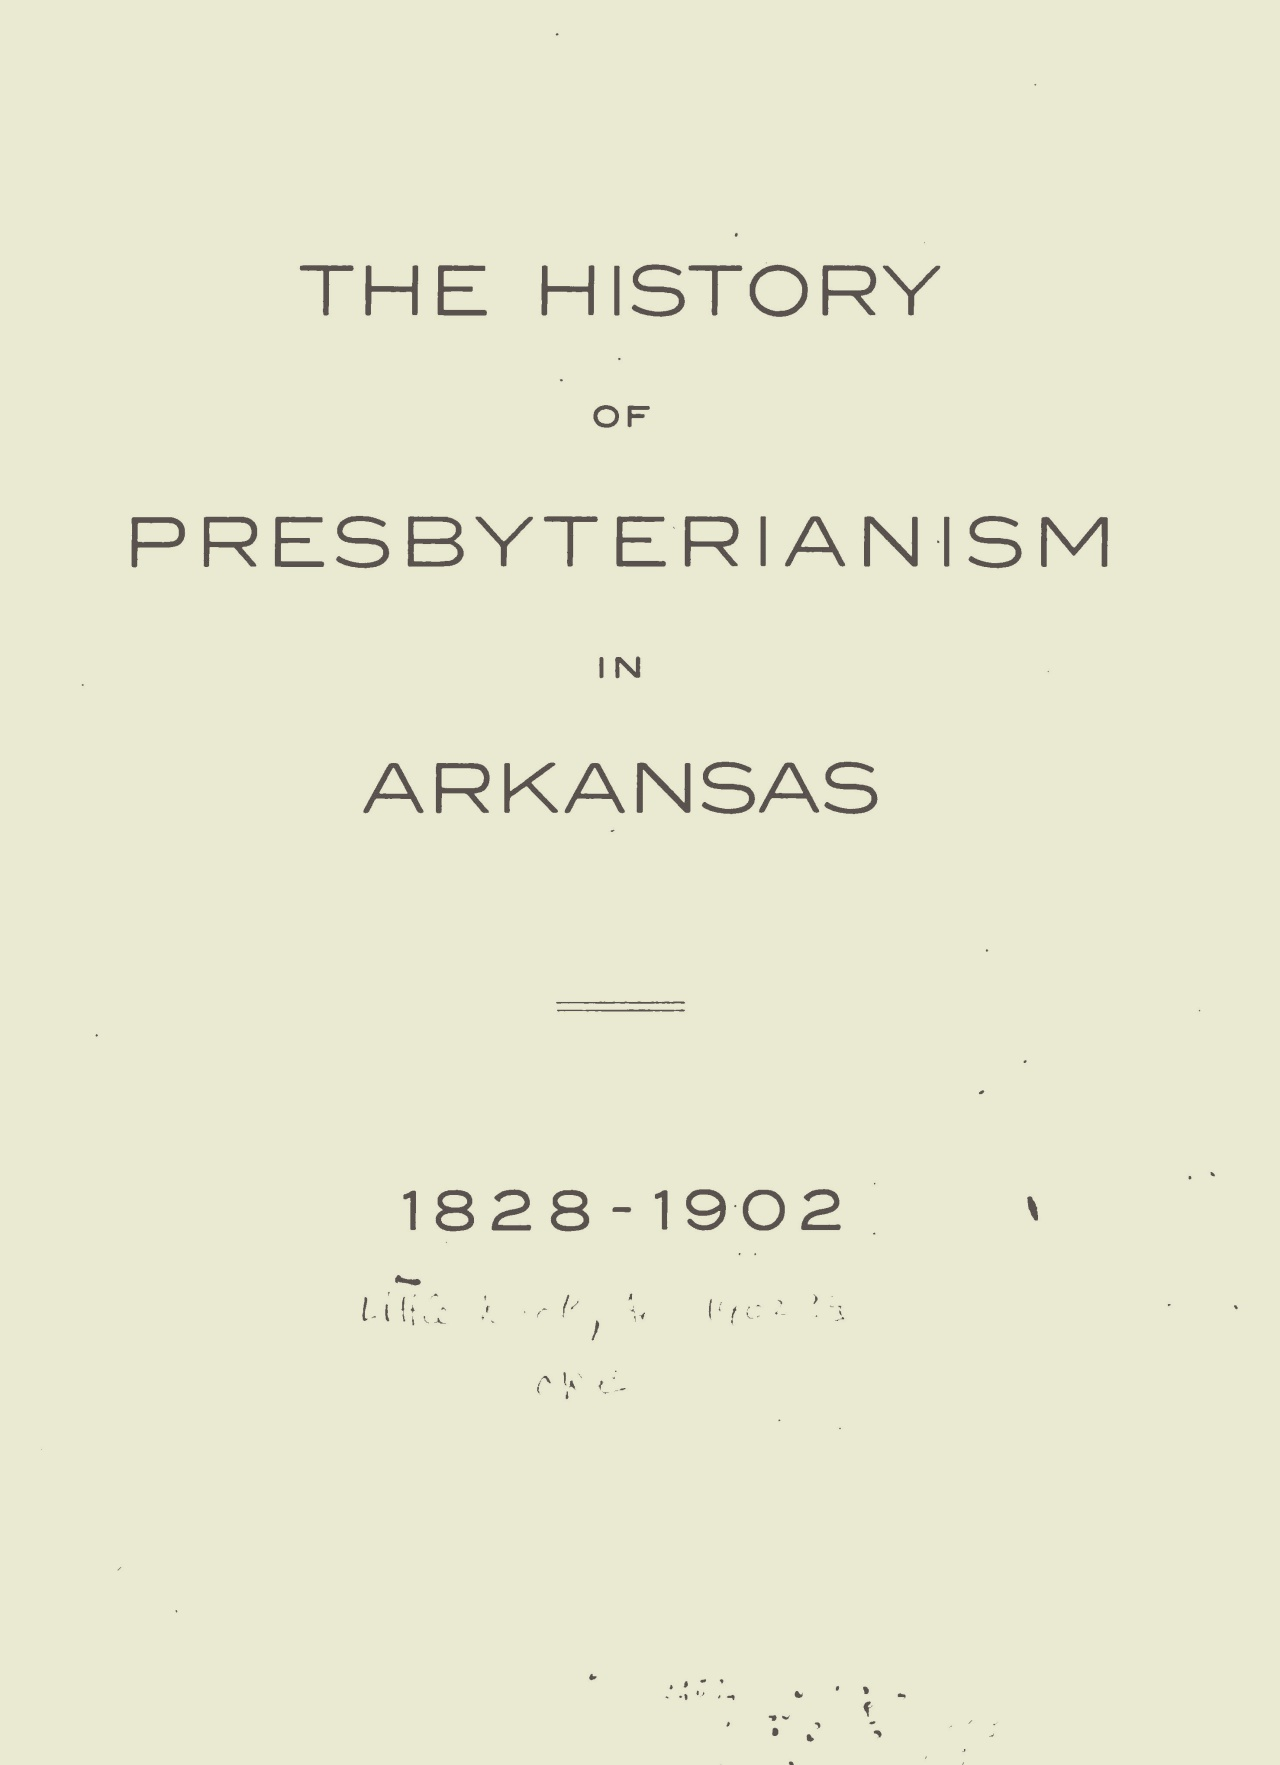 Moore, Charles Beatty, The History of Presbyterianism in Arkansas, 1828-1902 Title Page.jpg